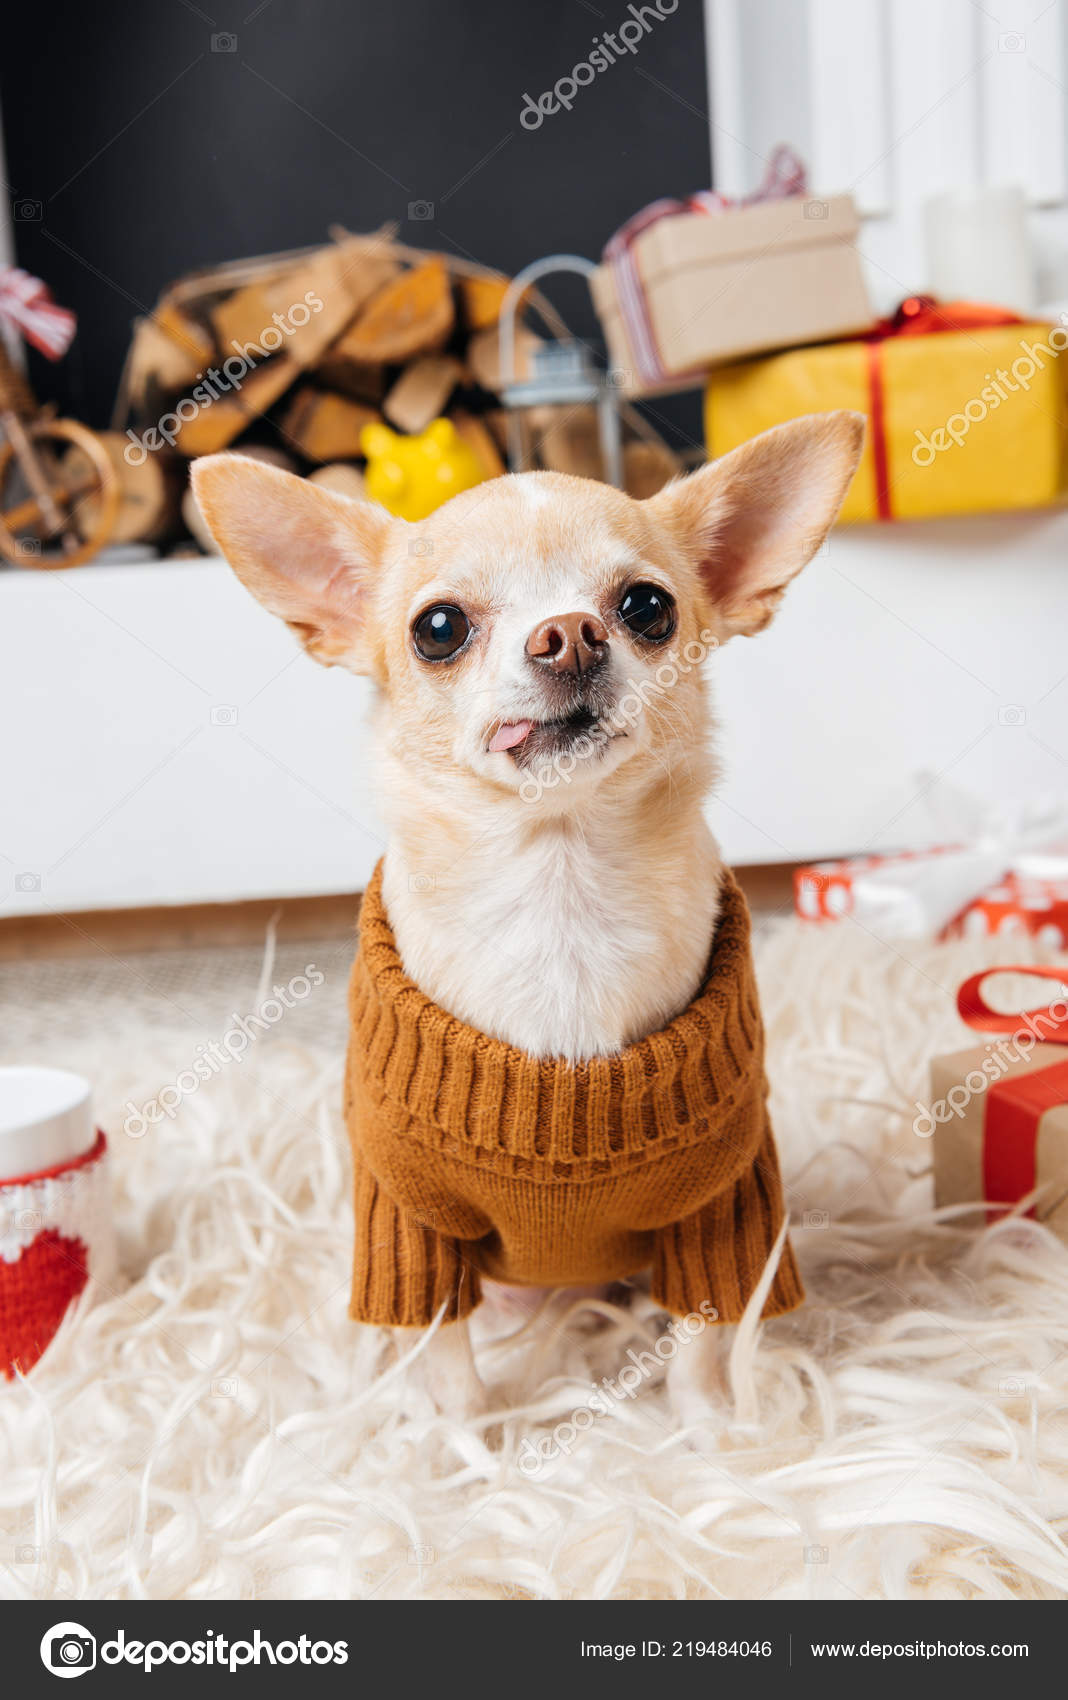 Little Chihuahua Dog Sweater Cup Hot Drink Christmas Gifts Stock